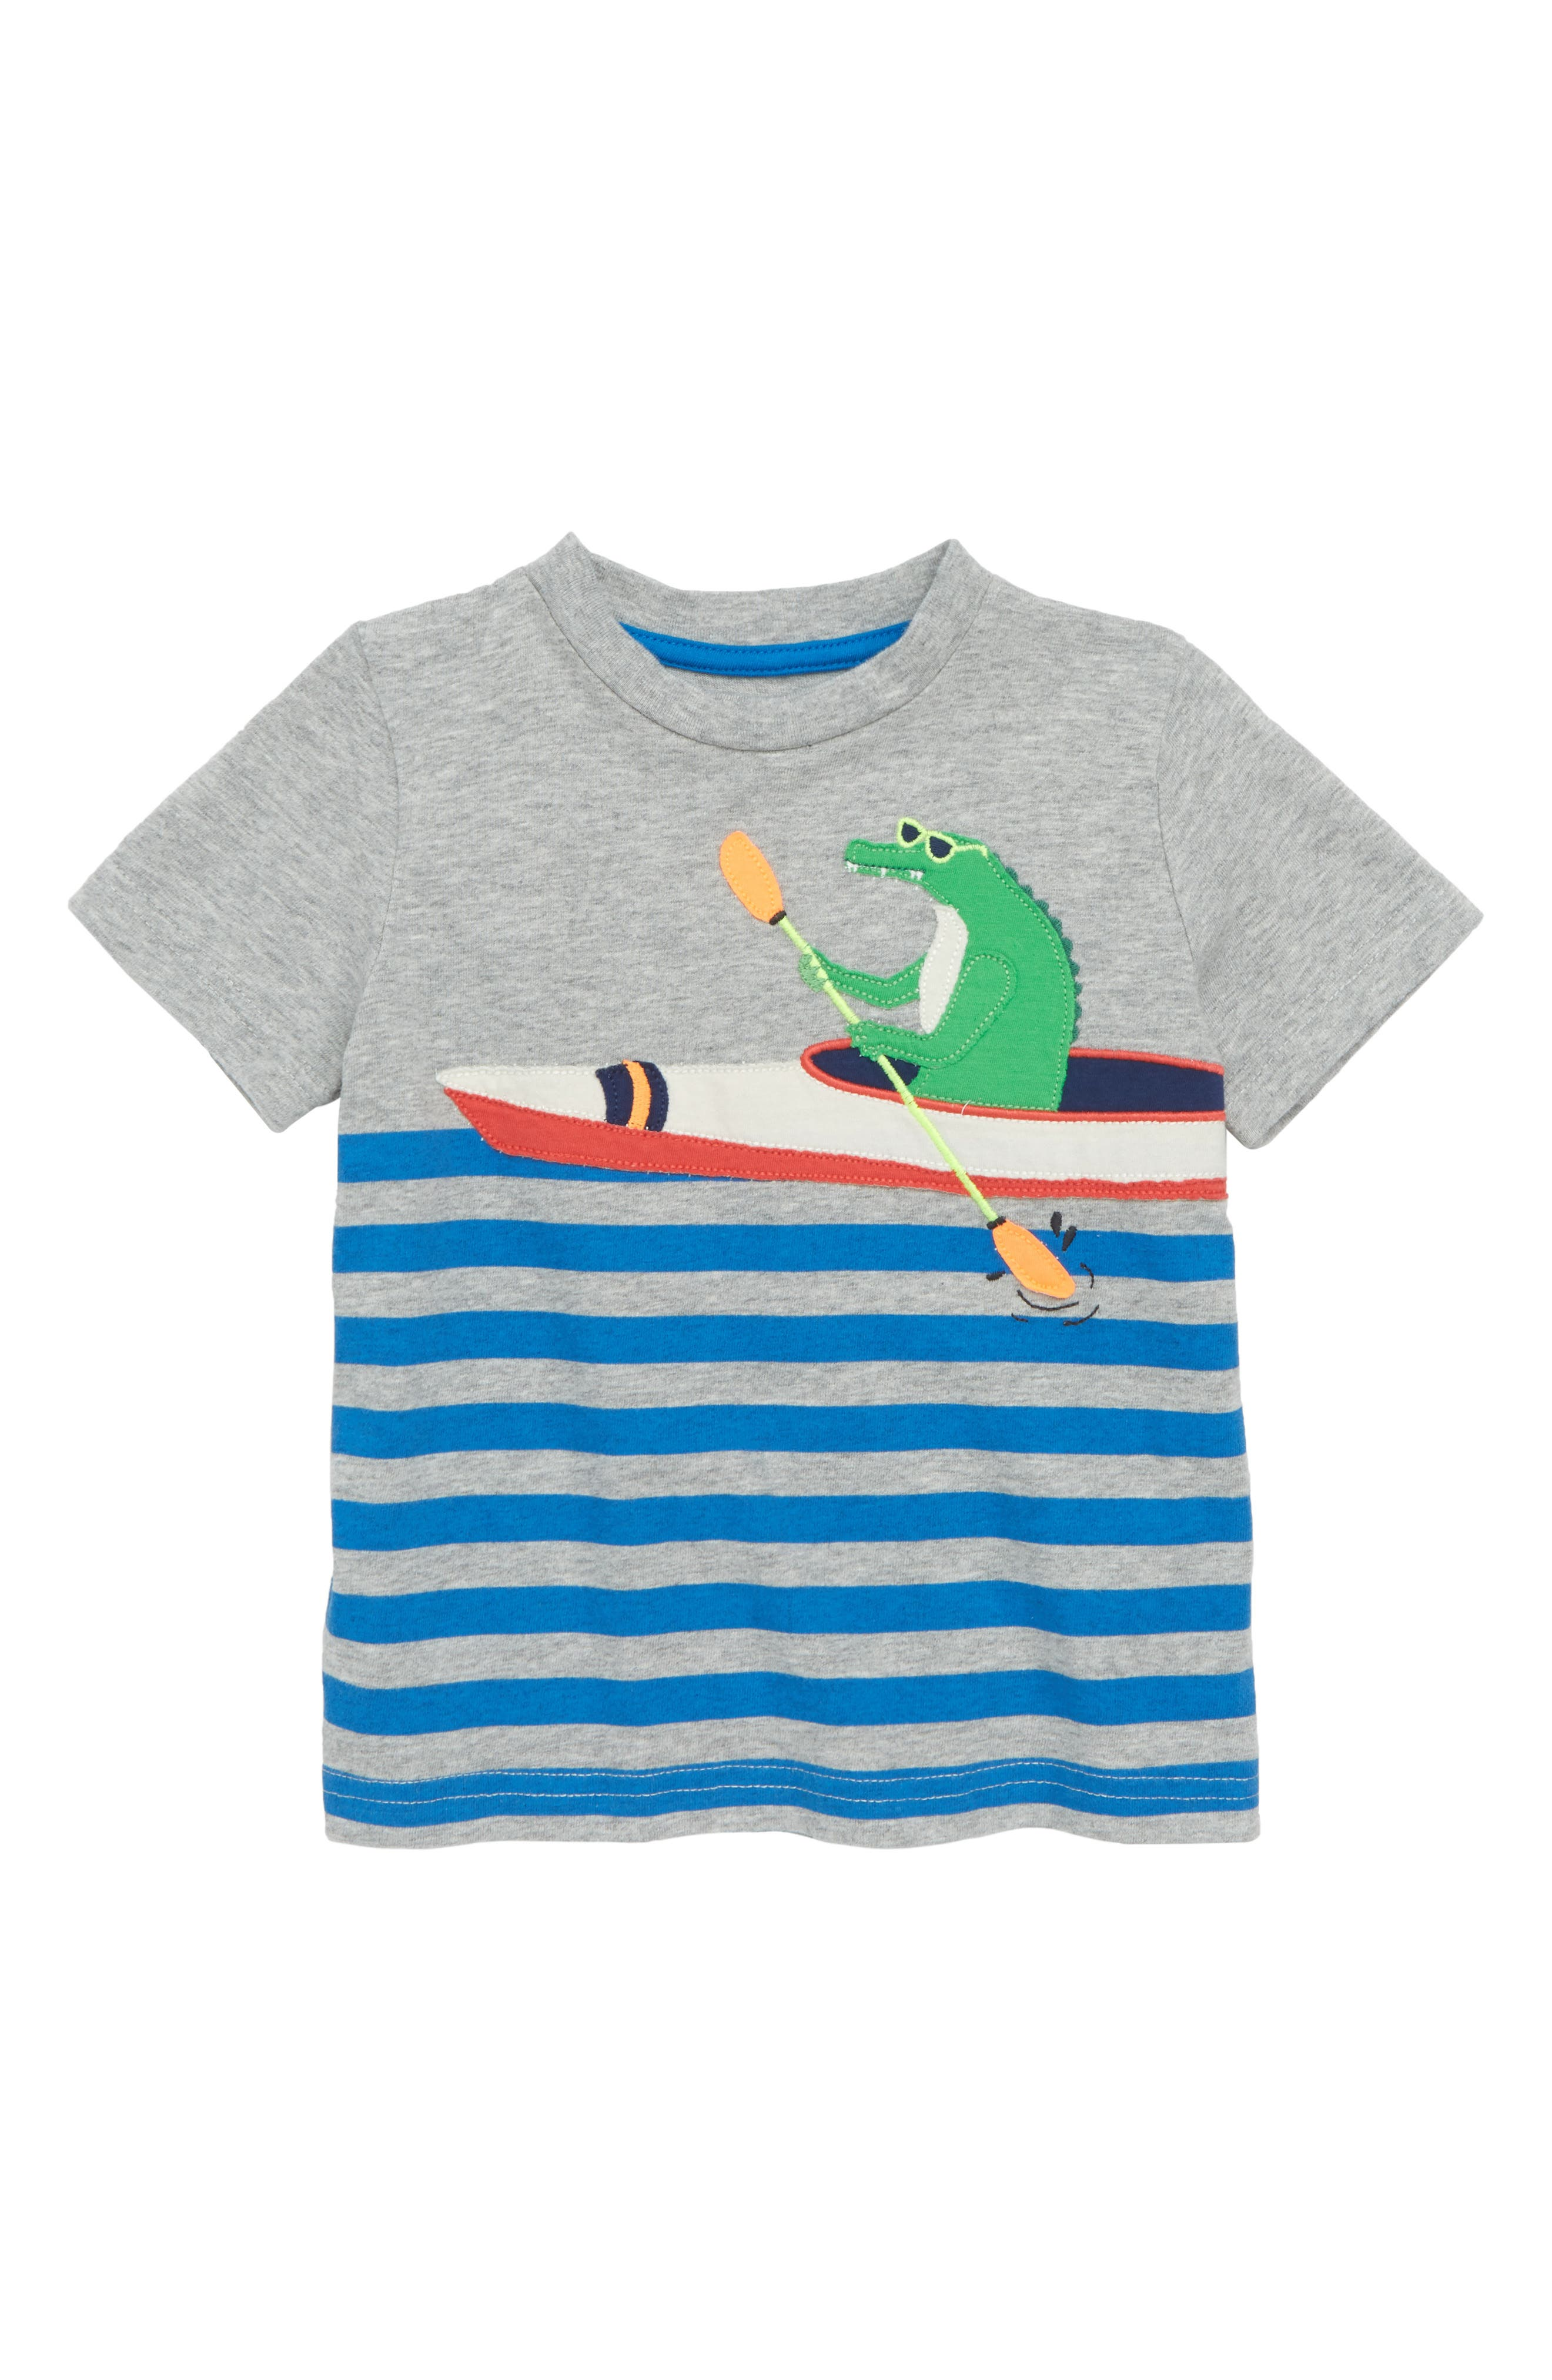 Paddling Pal Appliqué T-Shirt,                         Main,                         color, 034